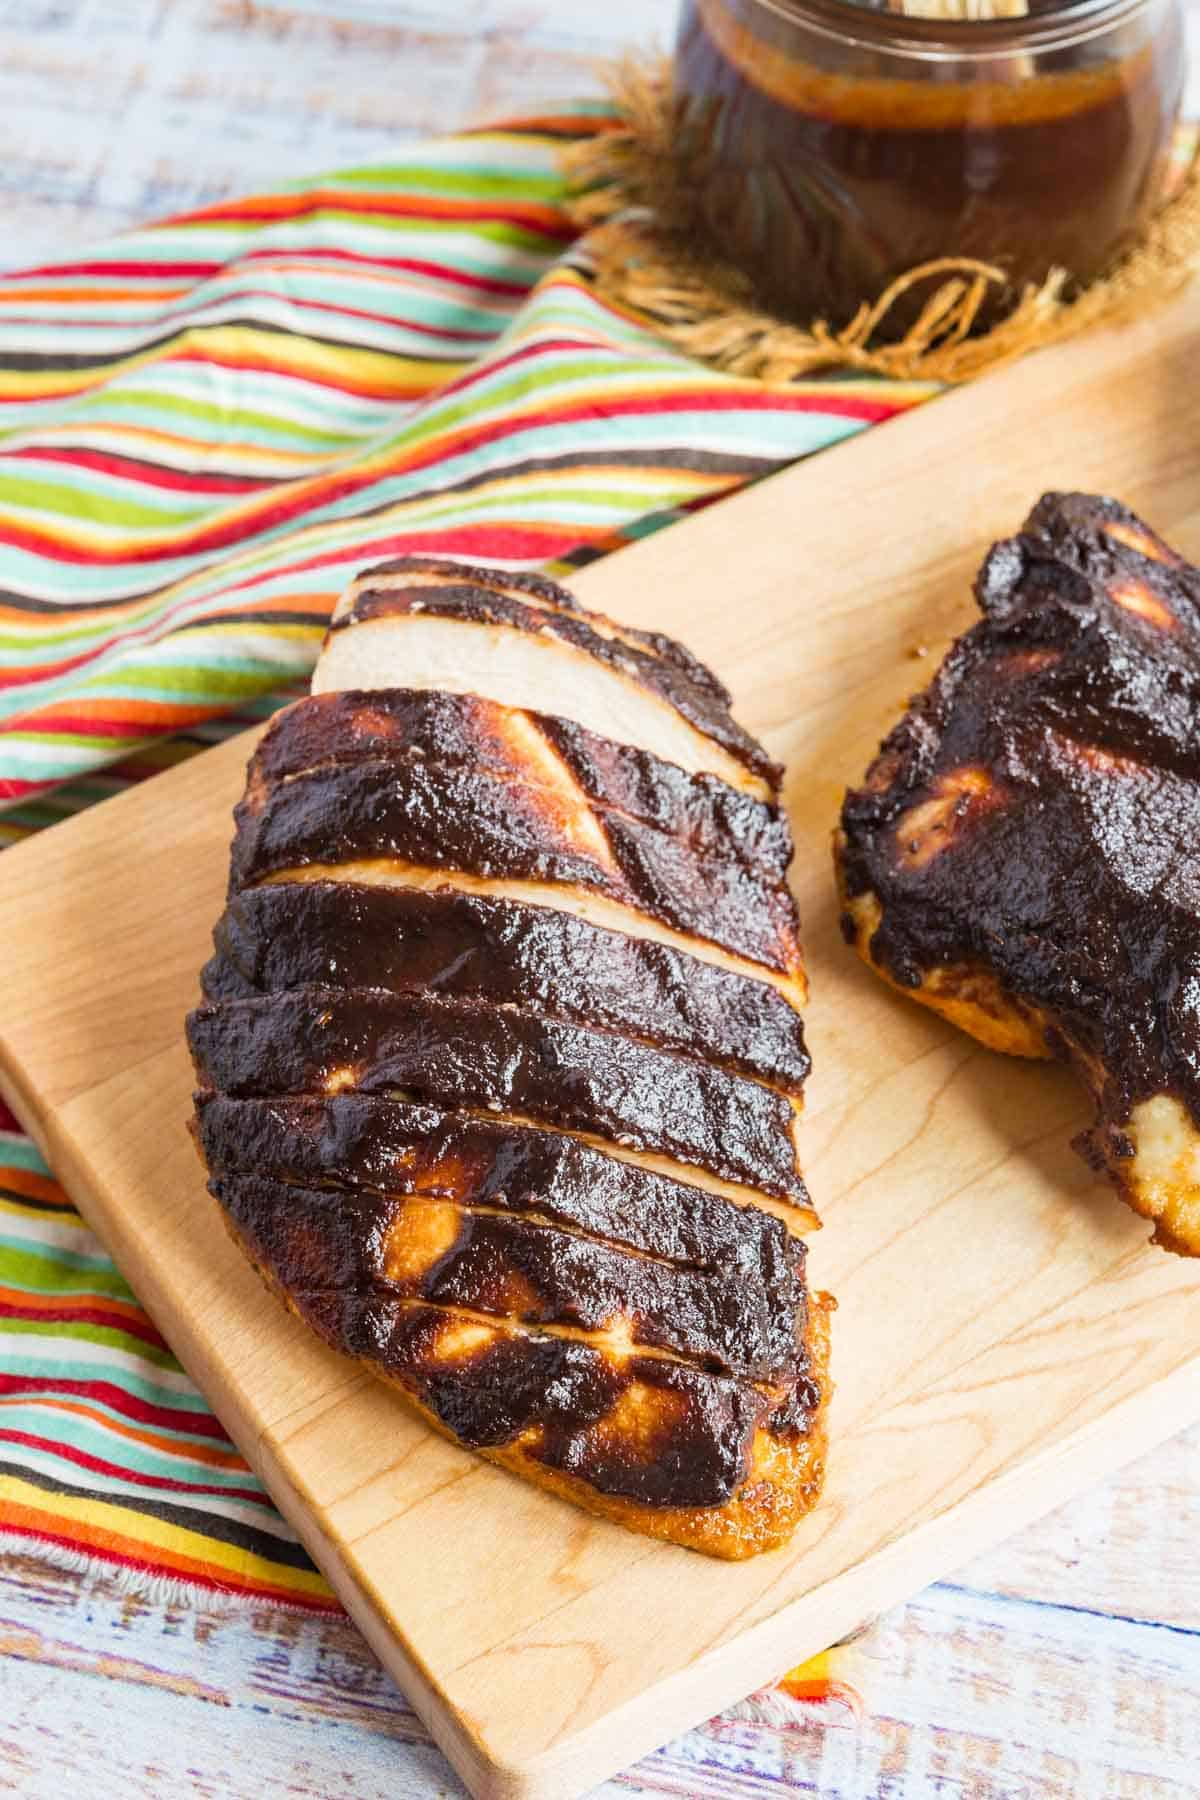 bbq balsamic baked chicken breast cut into slices on a cutting board